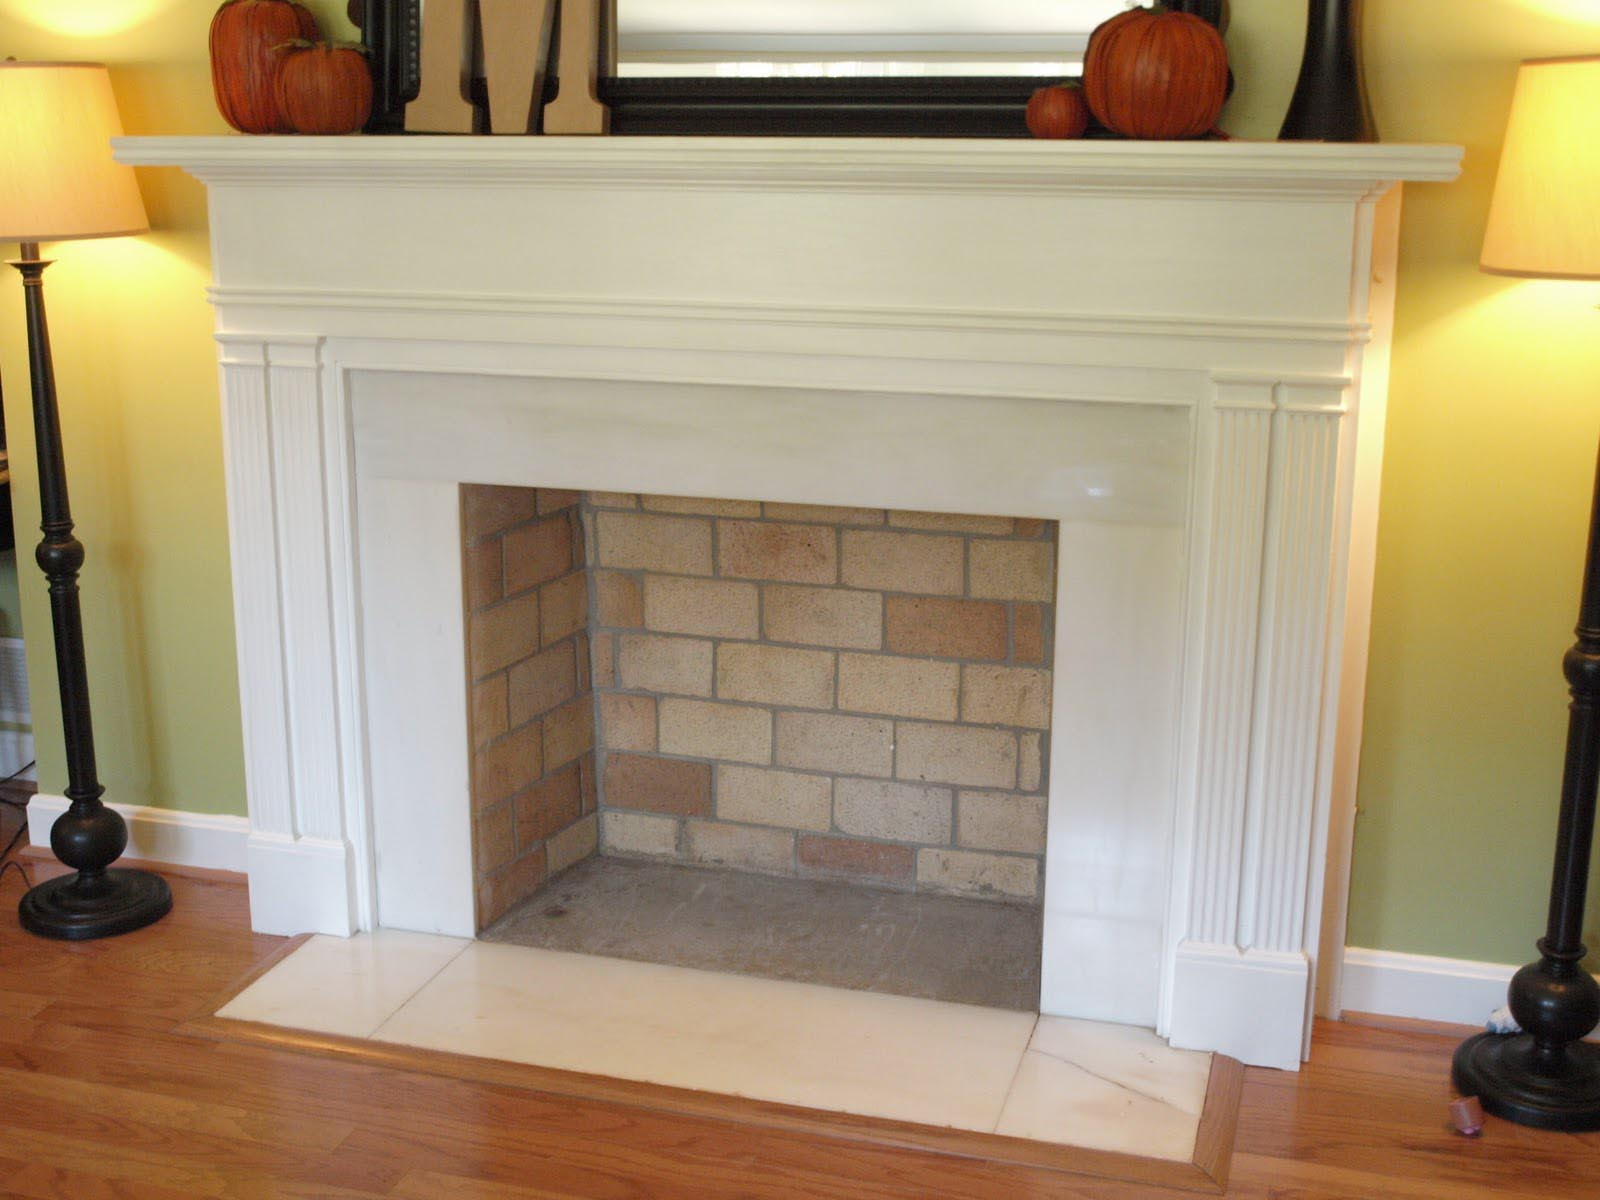 Tips & Tricks for Incredible Fake Fireplace Insert : Faux Fireplace Inserts. Faux fireplace inserts. electric fireplace